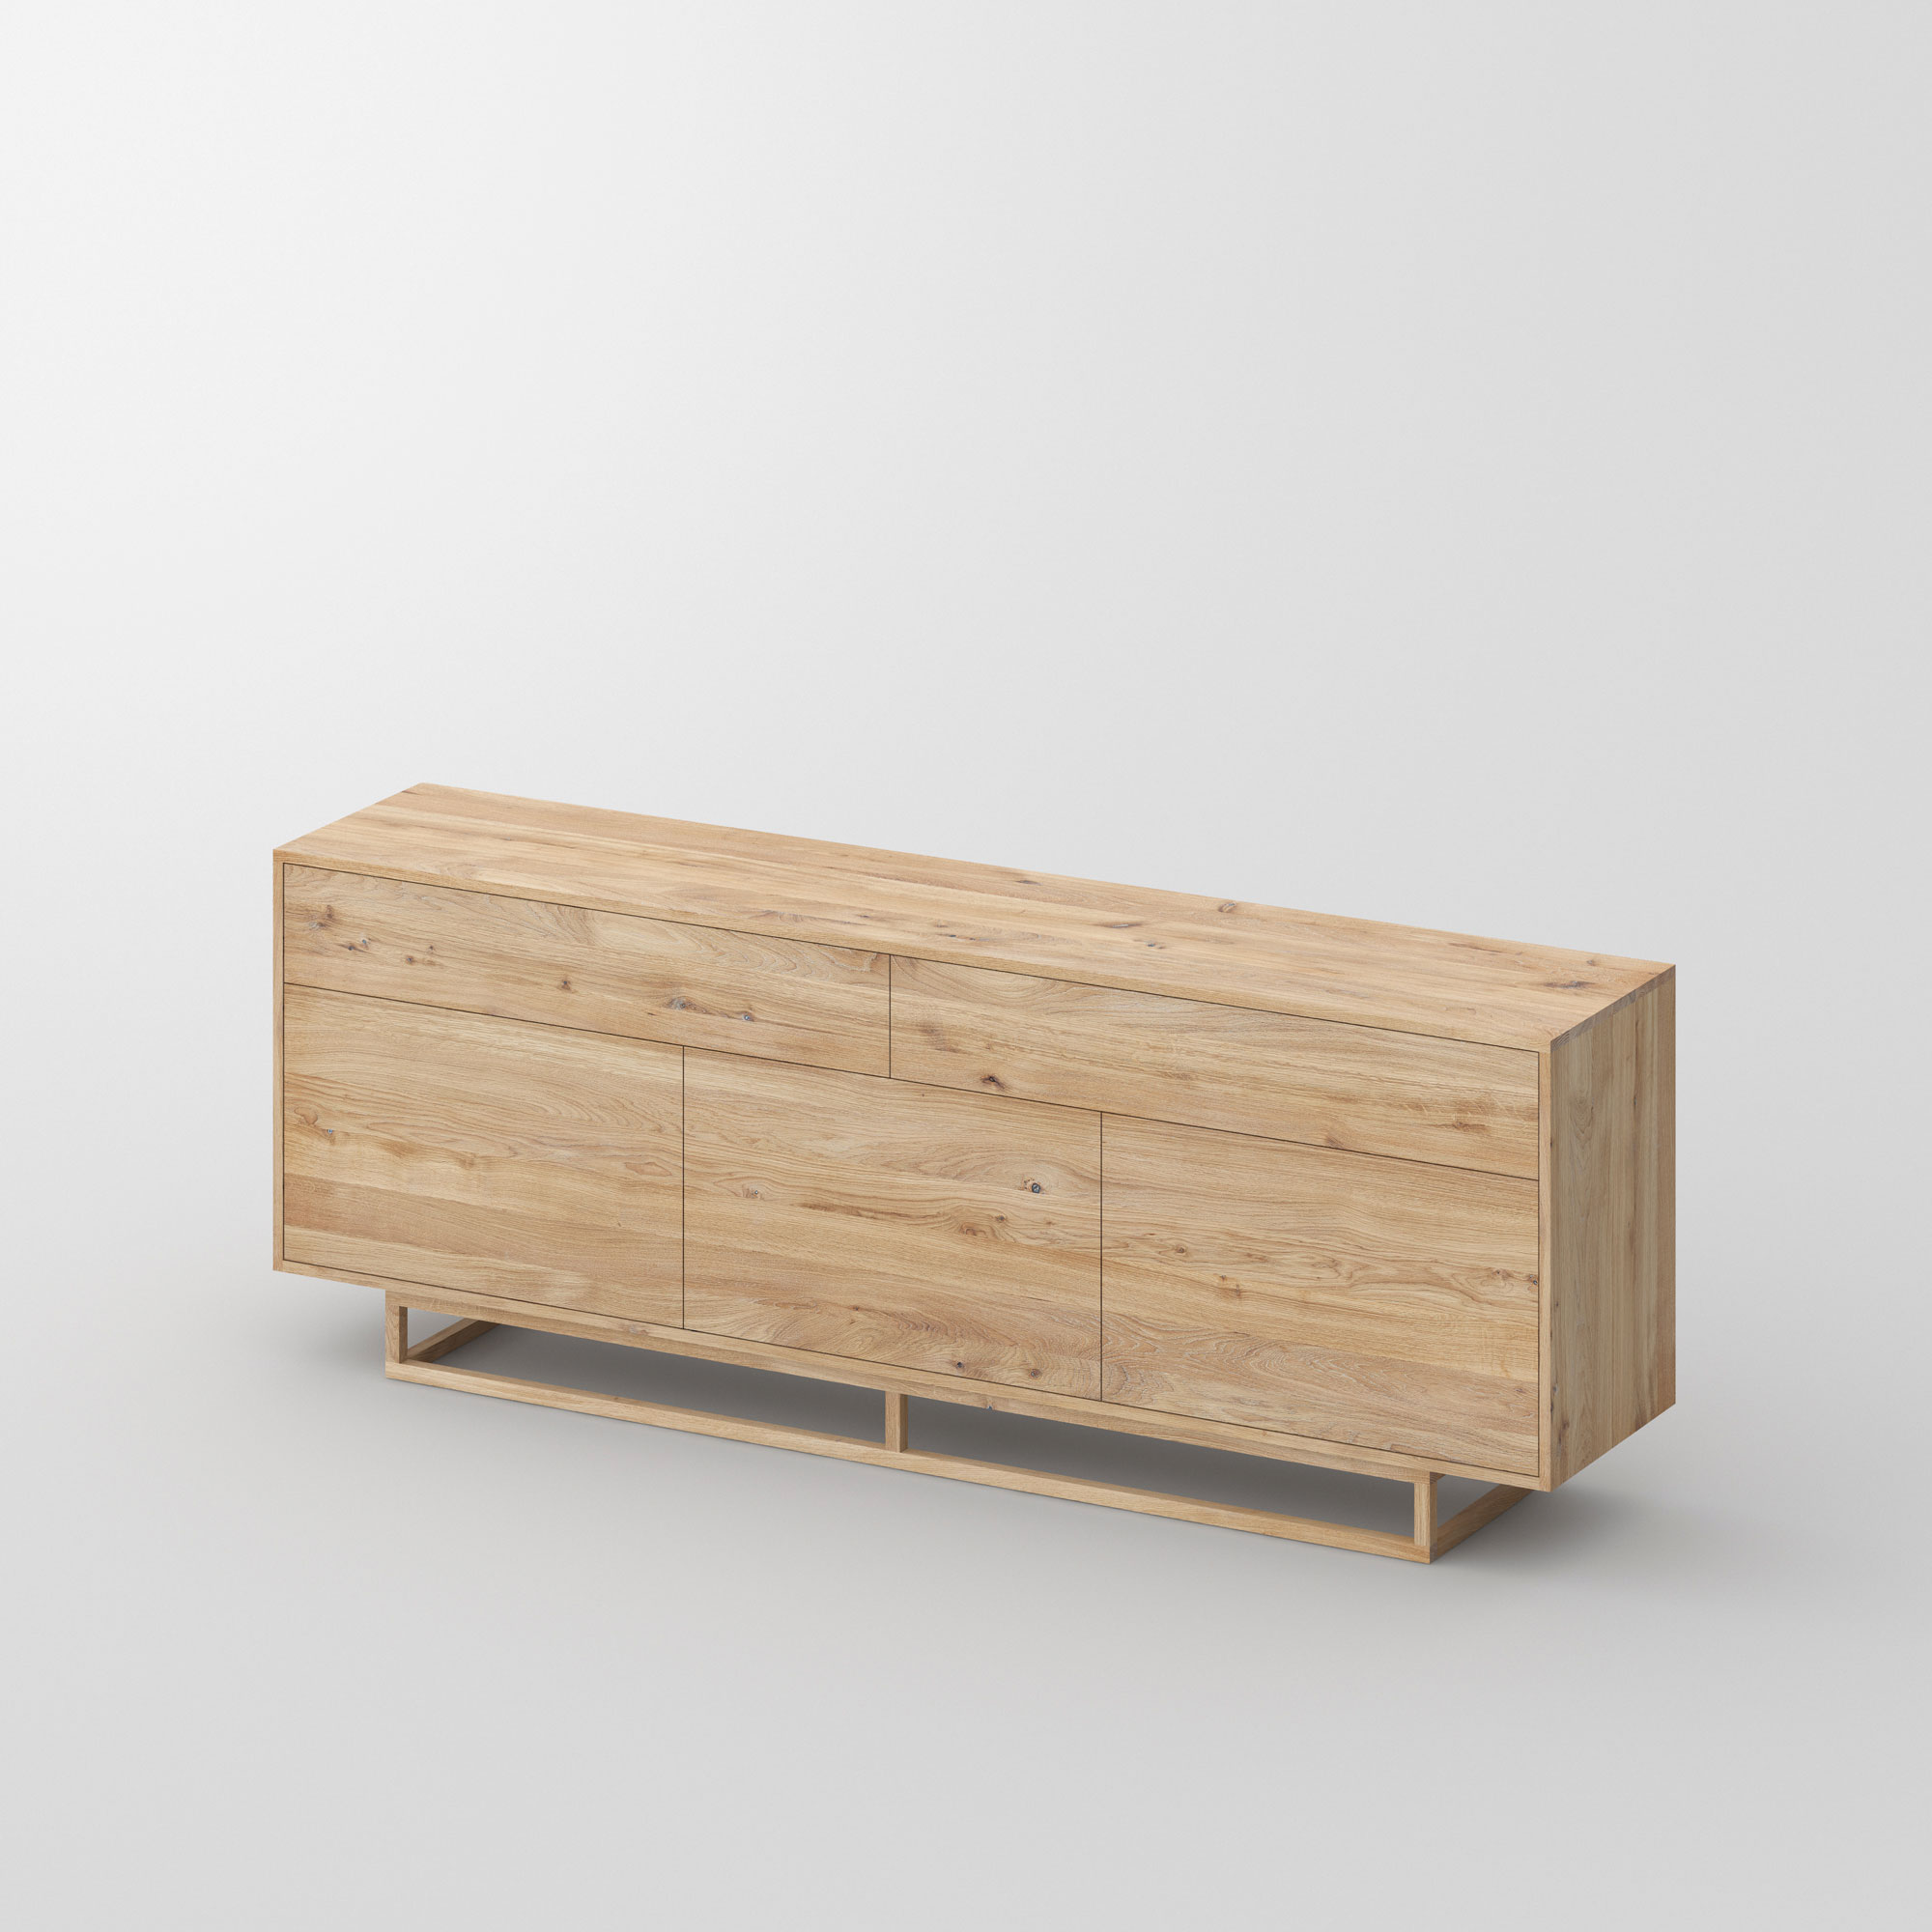 Wooden Designer Sideboard LINEA cam1 custom made in solid wood by vitamin design